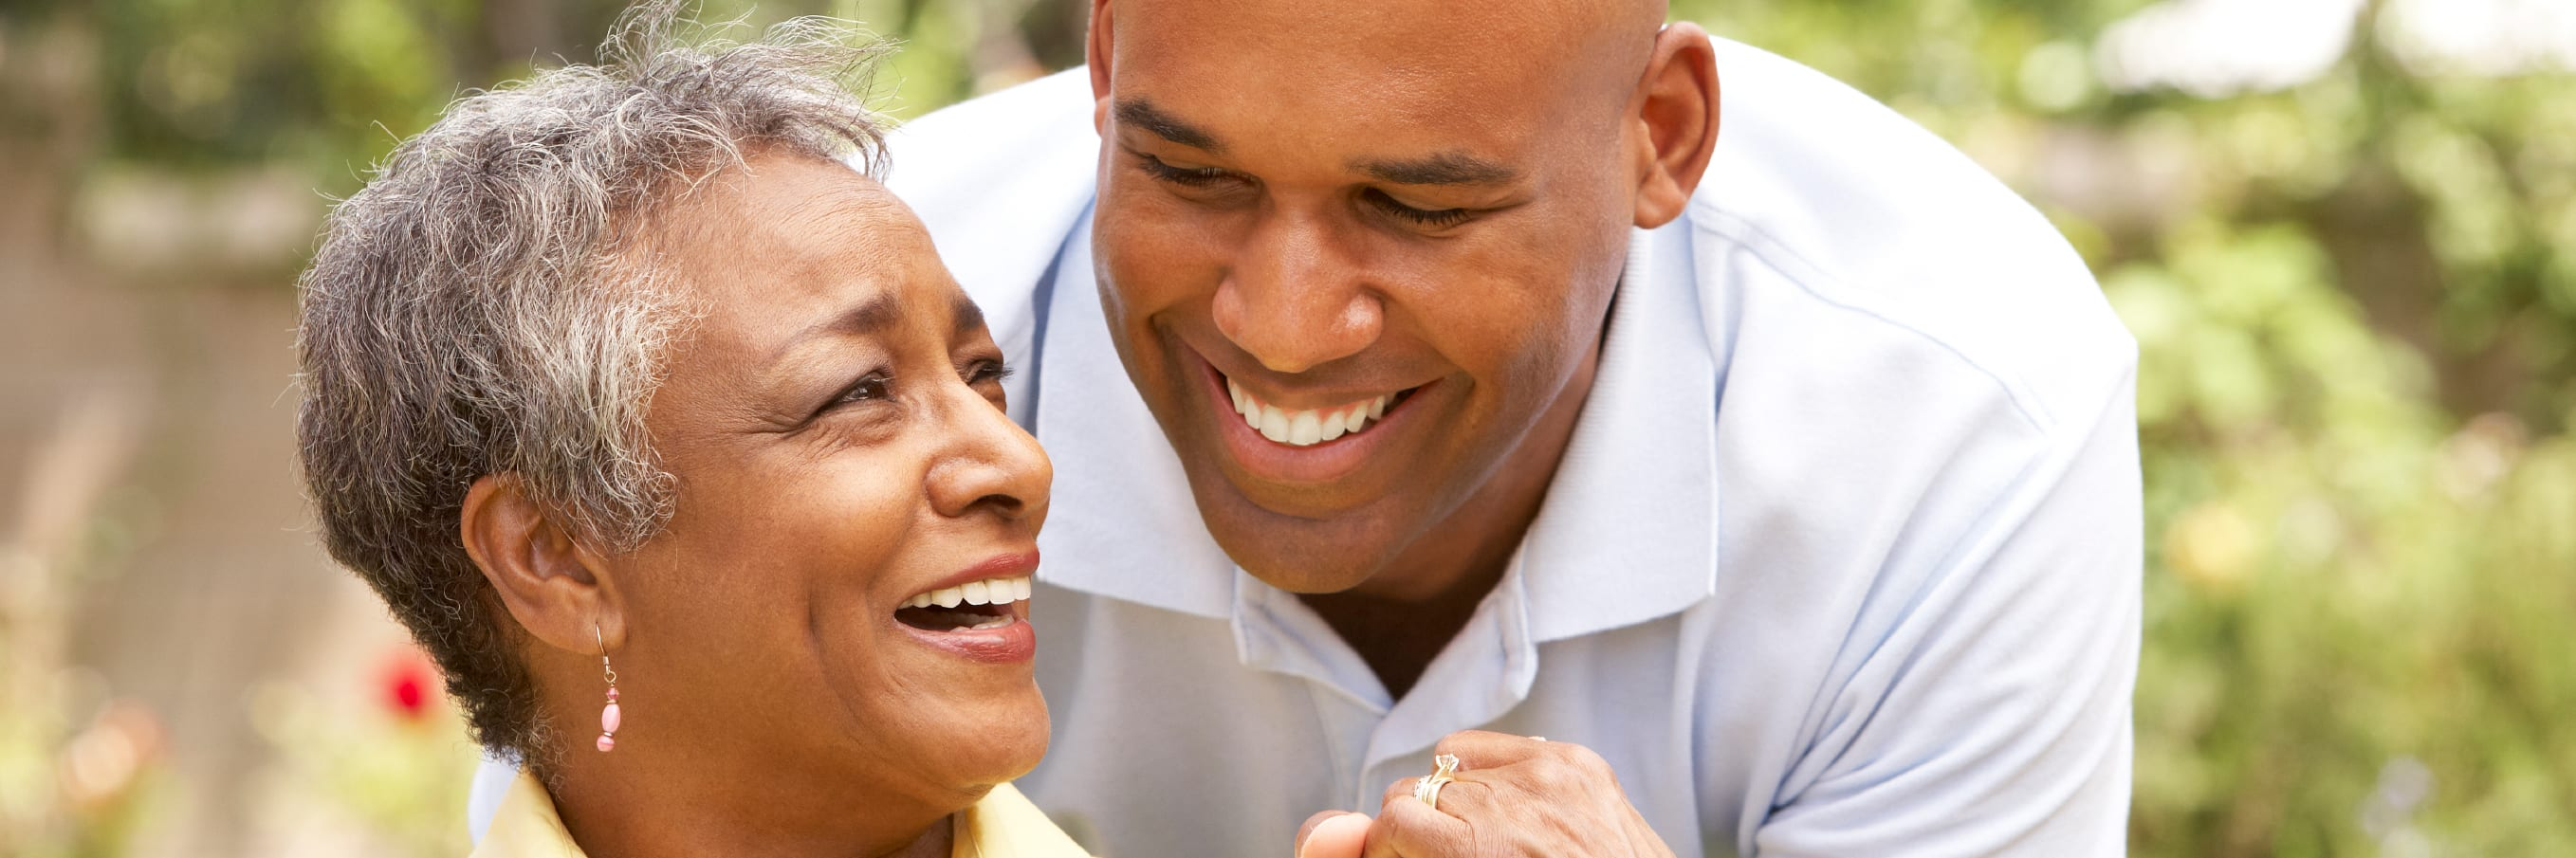 A man smiling over his mom's shoulder and holding her hand